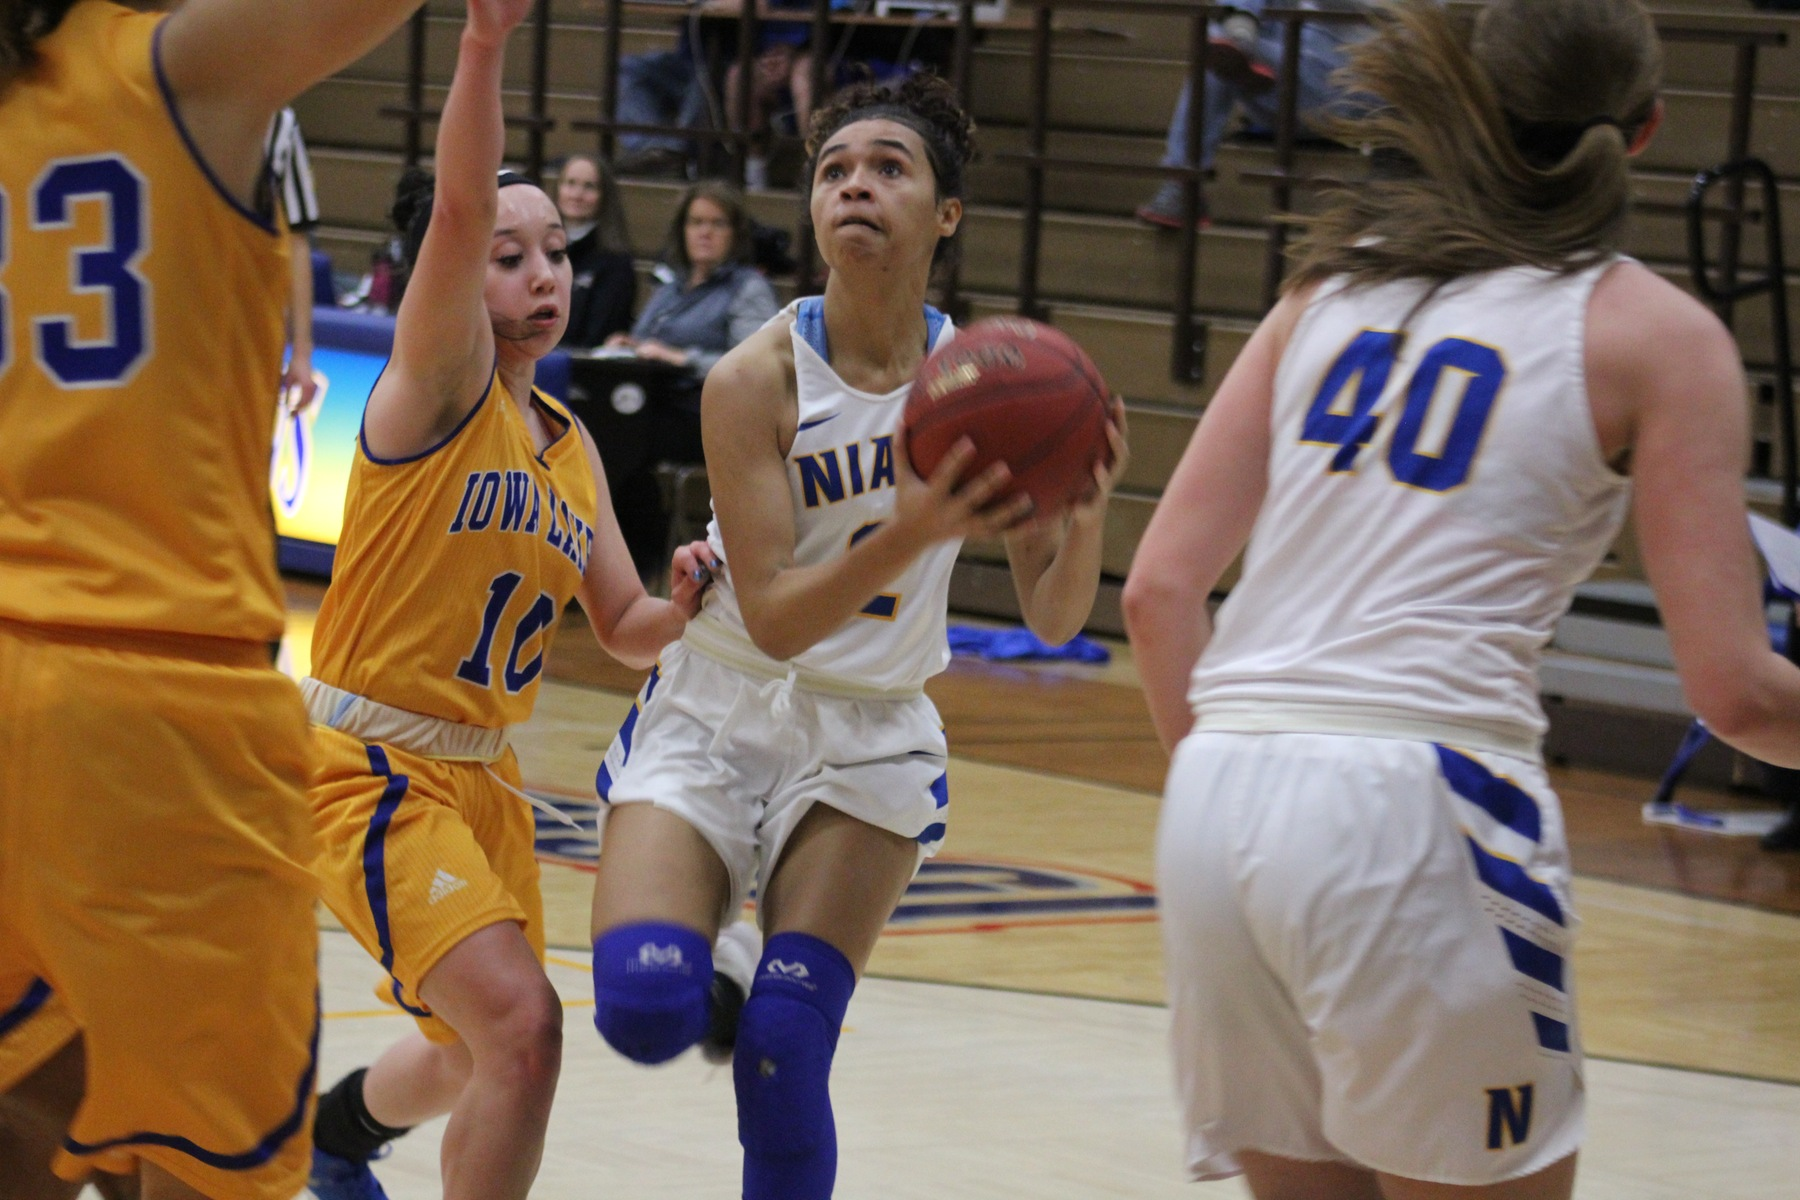 NIACC's Mikayla Homola drives to the basket for a layup in the first half of Wednesday's game against Iowa Lakes.